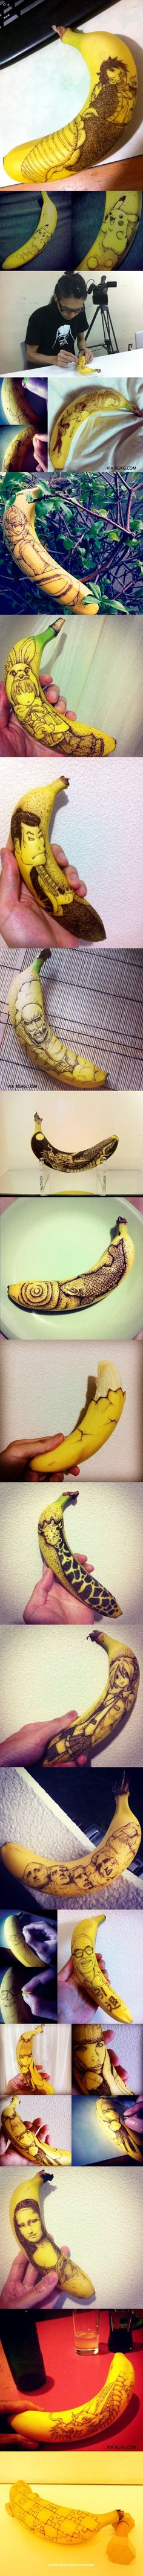 Impressive tattooed bananas by a Japanese artist